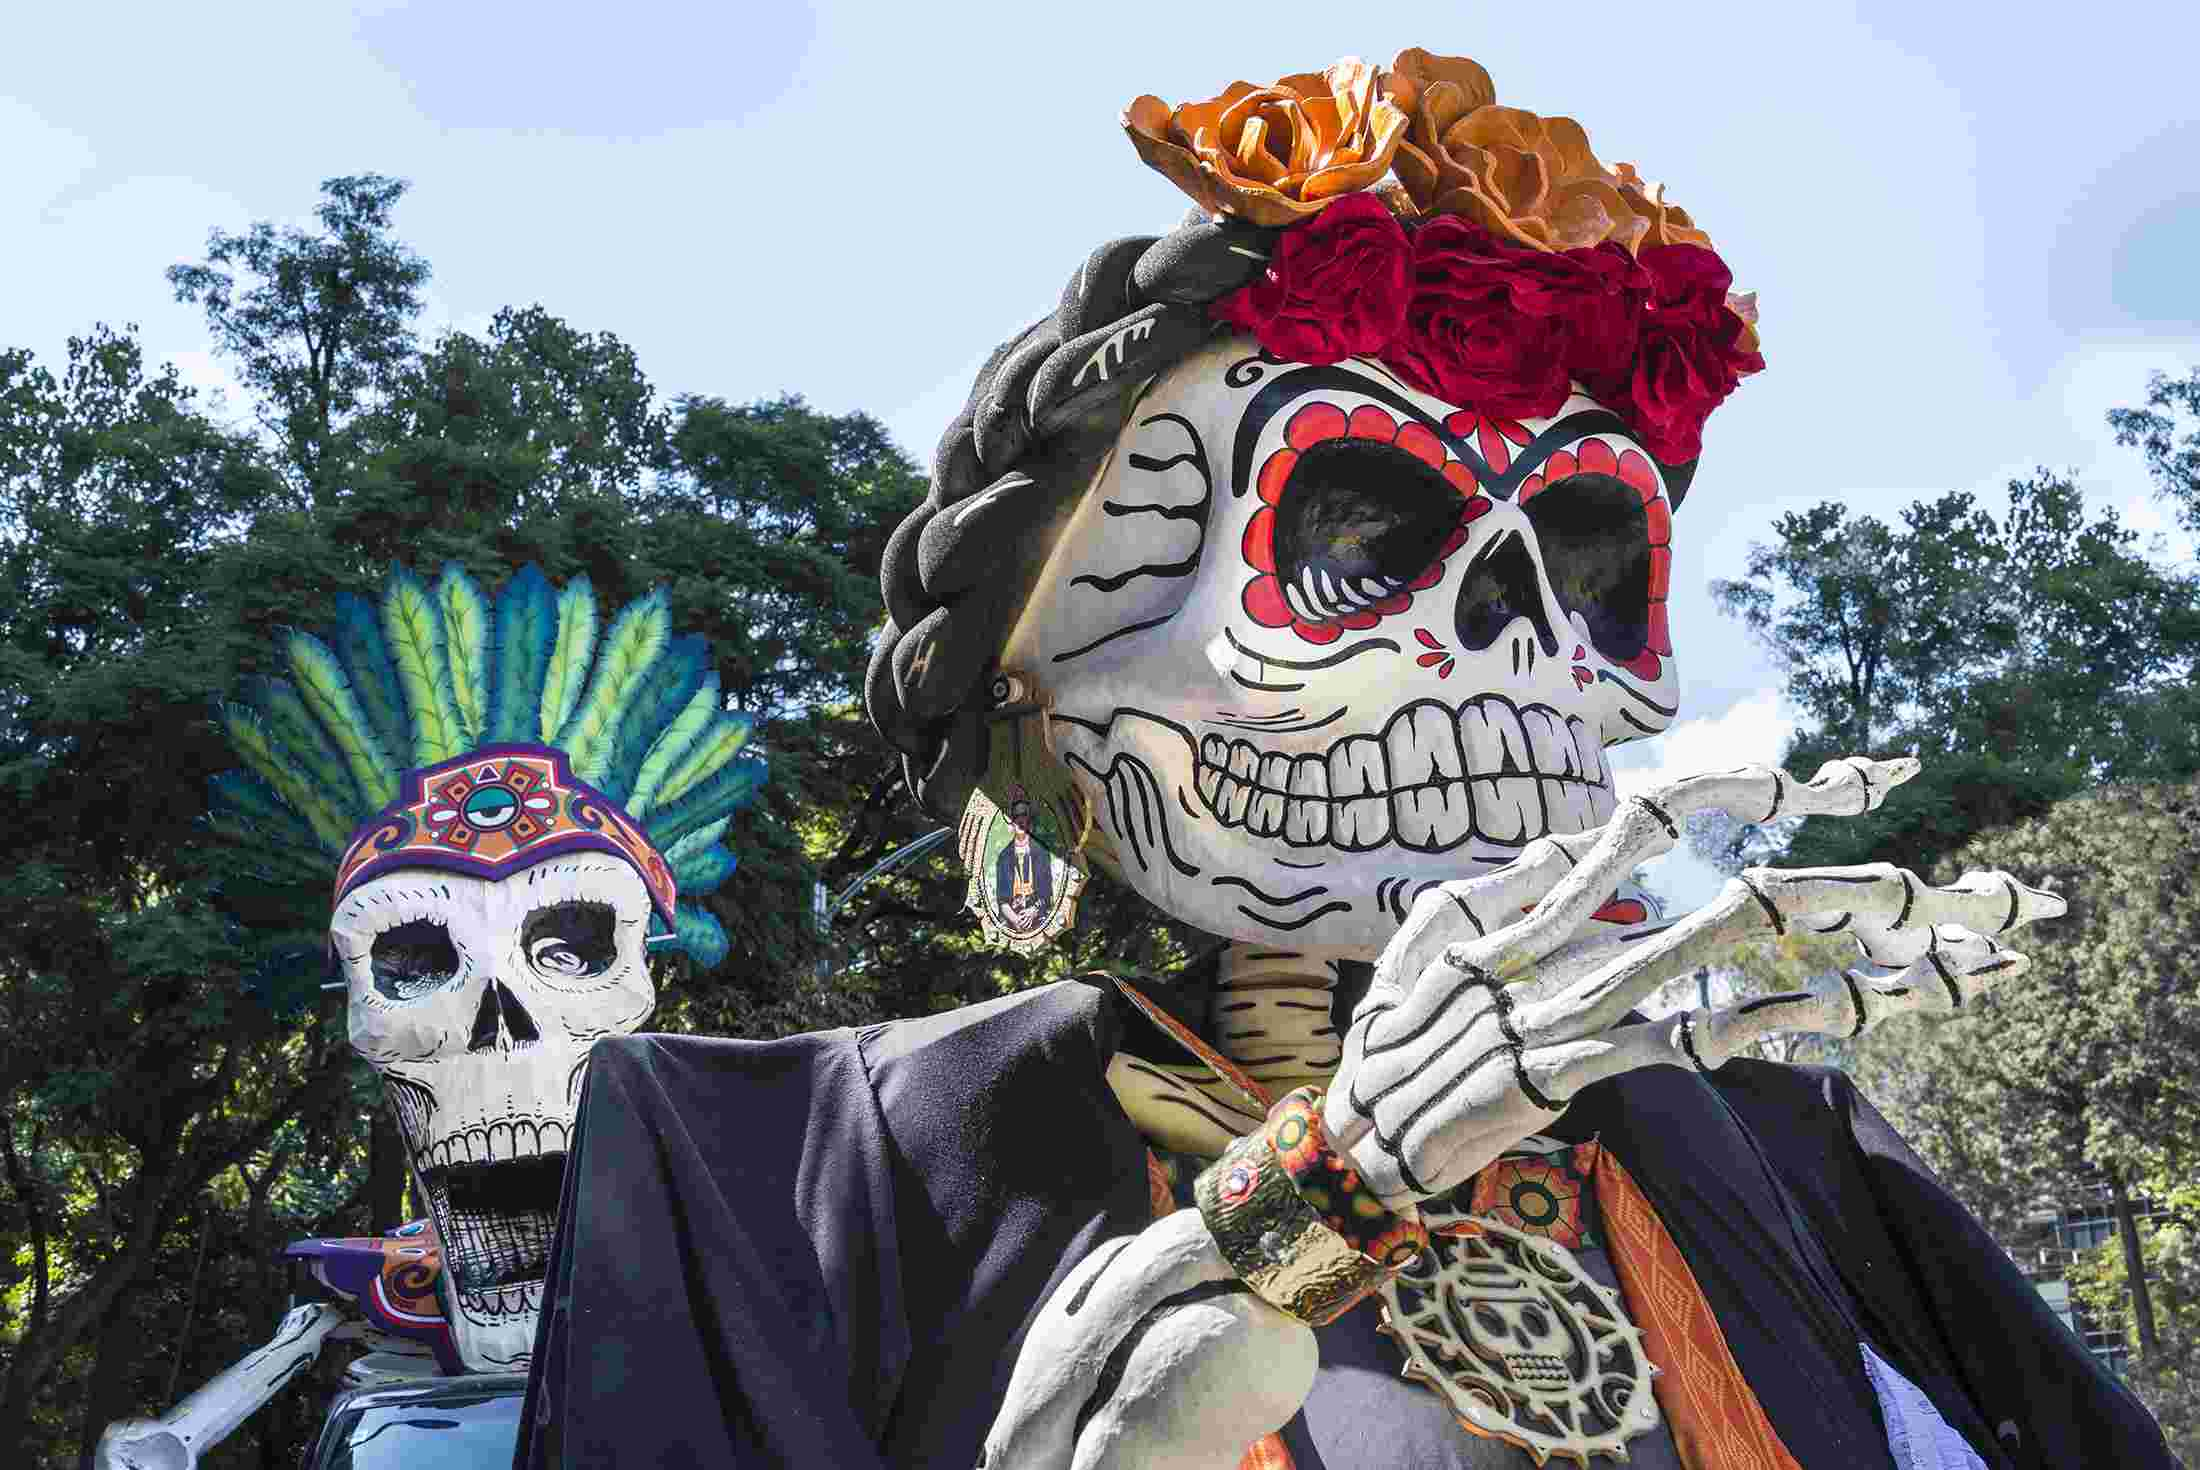 Real Day of the Dead Oaxaca | Intrepid Travel UK